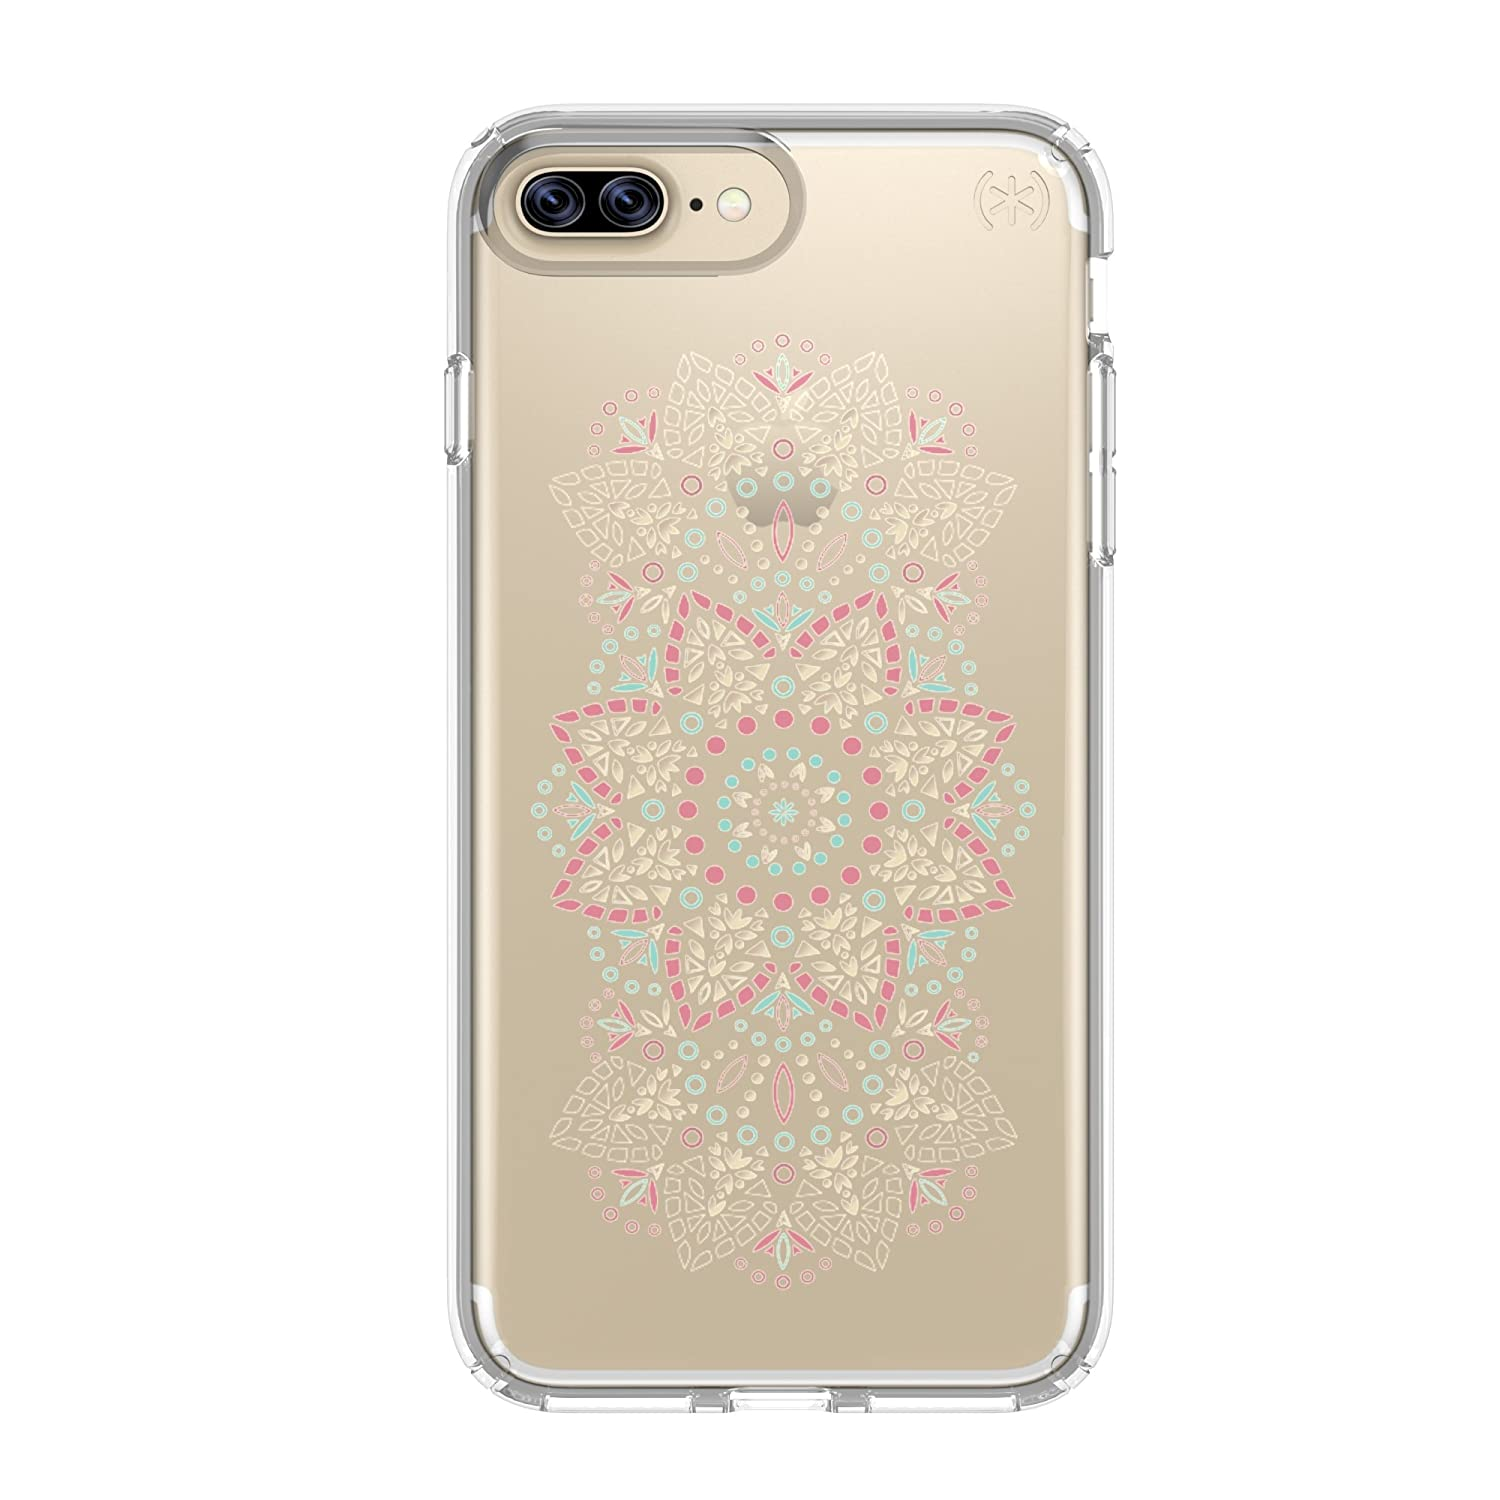 2c3b8996e0af Amazon.com  Speck Products Presidio Clear + Print Cell Phone Case for iPhone  7 Plus 6S Plus 6 Plus - Lace Mandala Pink clear  Cell Phones   Accessories